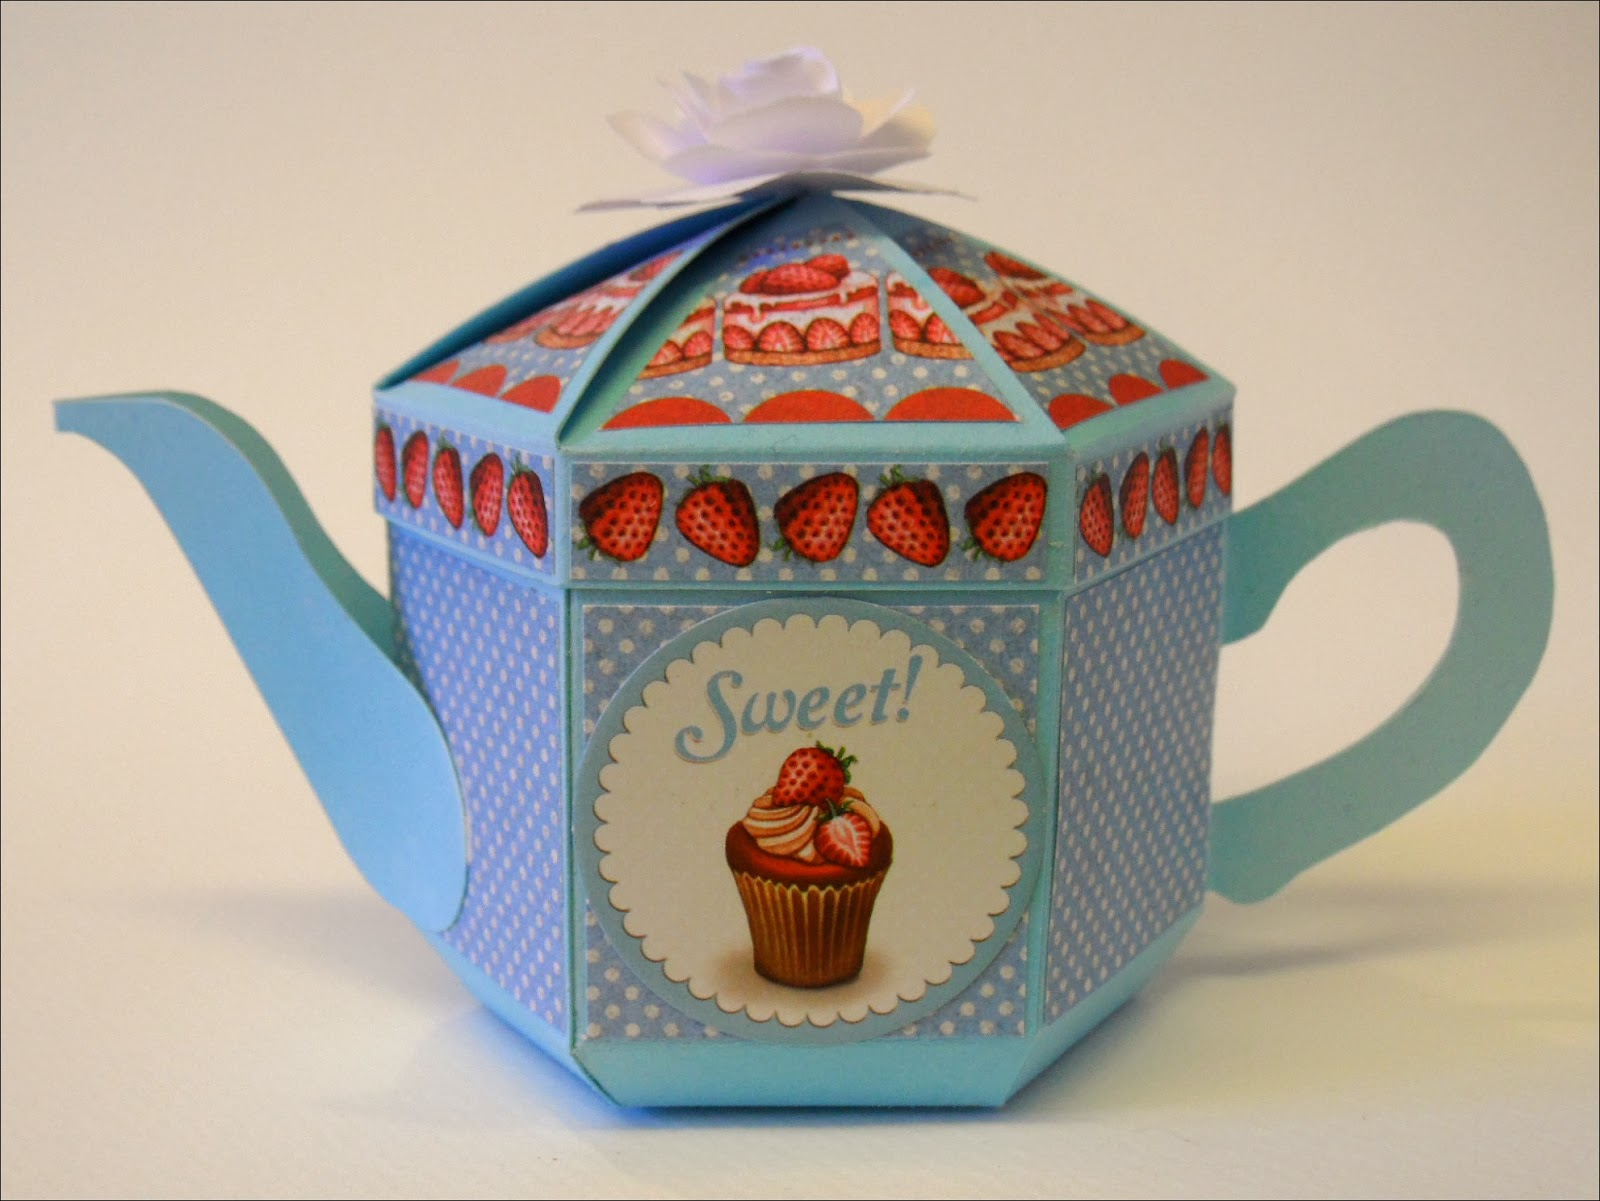 Teapot Box Template I love this teapot box, Images - Frompo